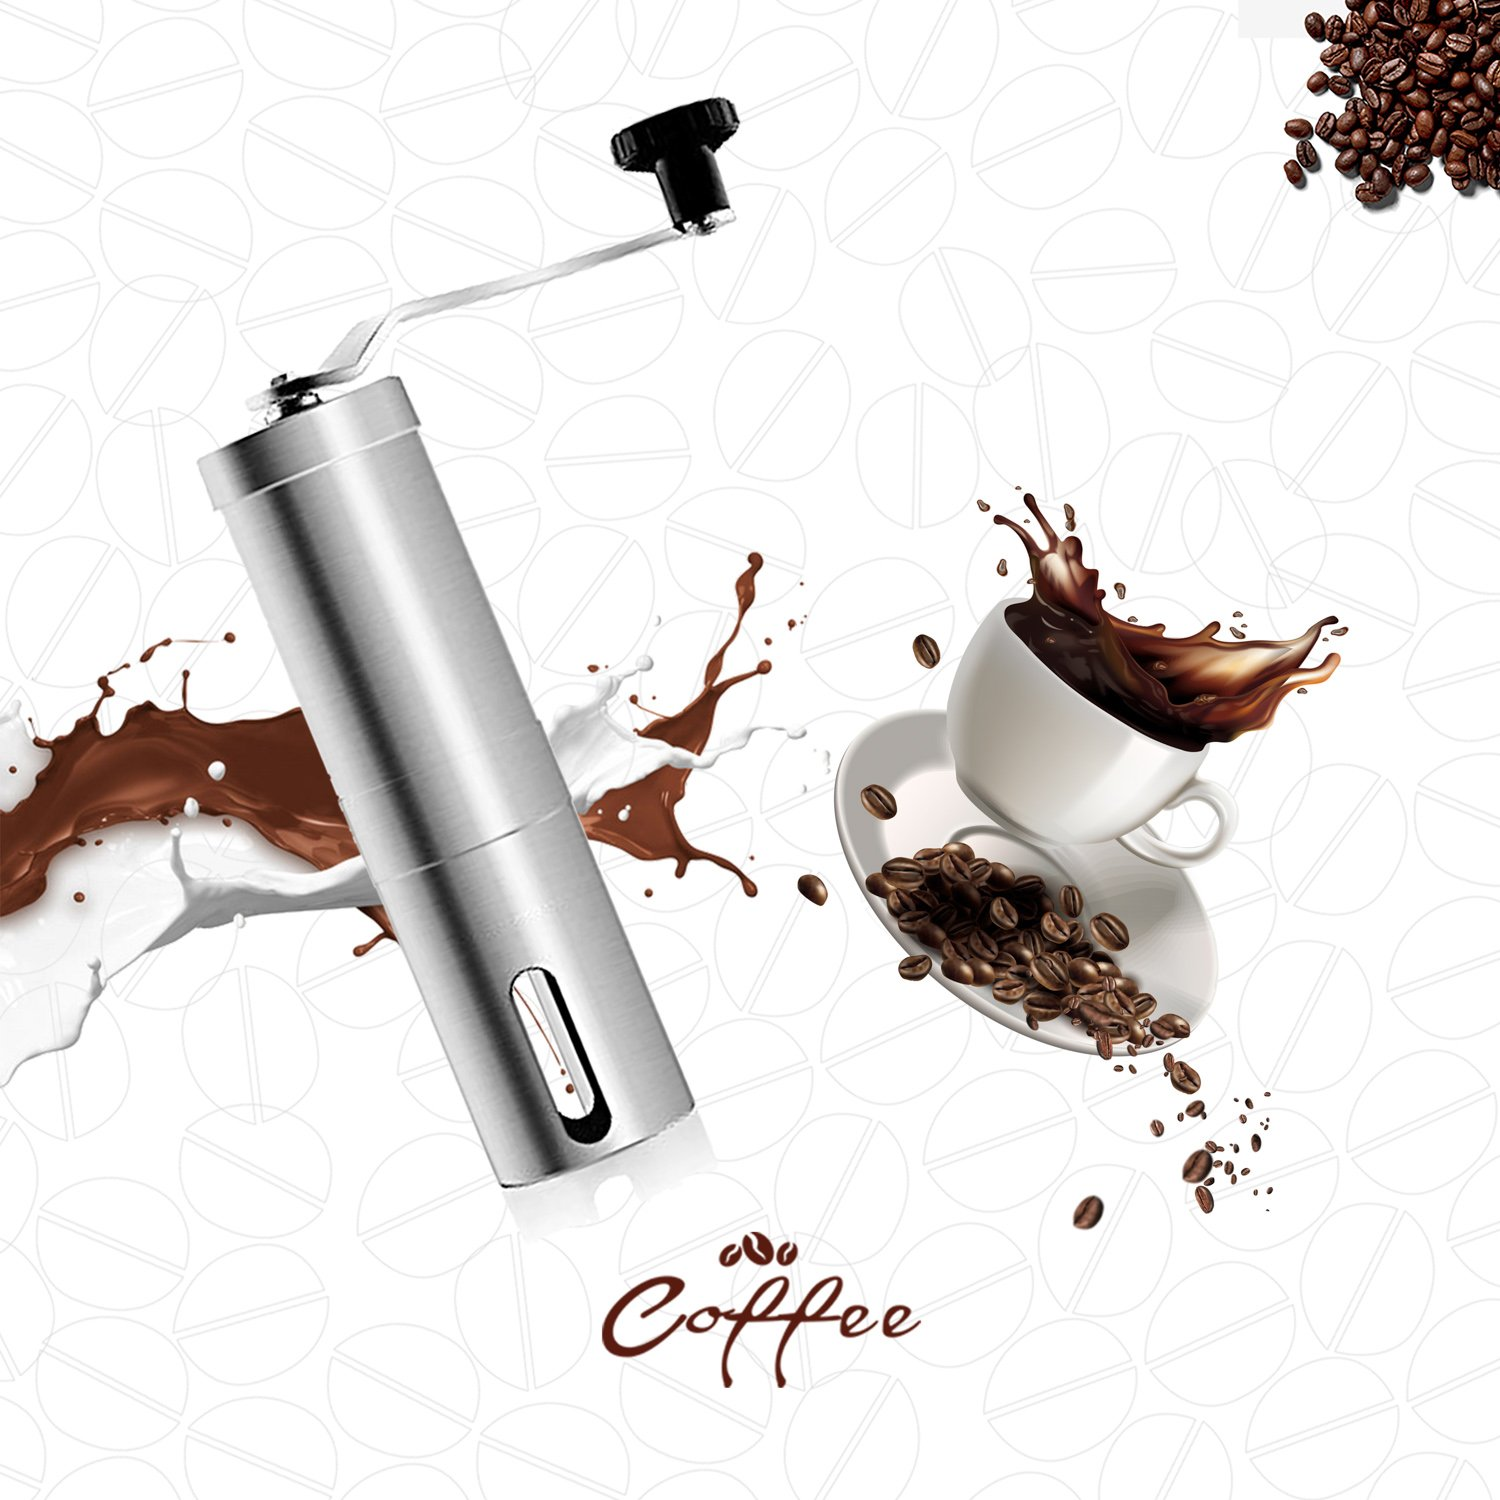 Coffee Grinder, Aessdcan Manual Coffee Mill, Mini Portable Home Kitchen Travel Stainless Steel Coffee Bean Grinder with Adjustable Ceramic Core by Aessdcan (Image #7)